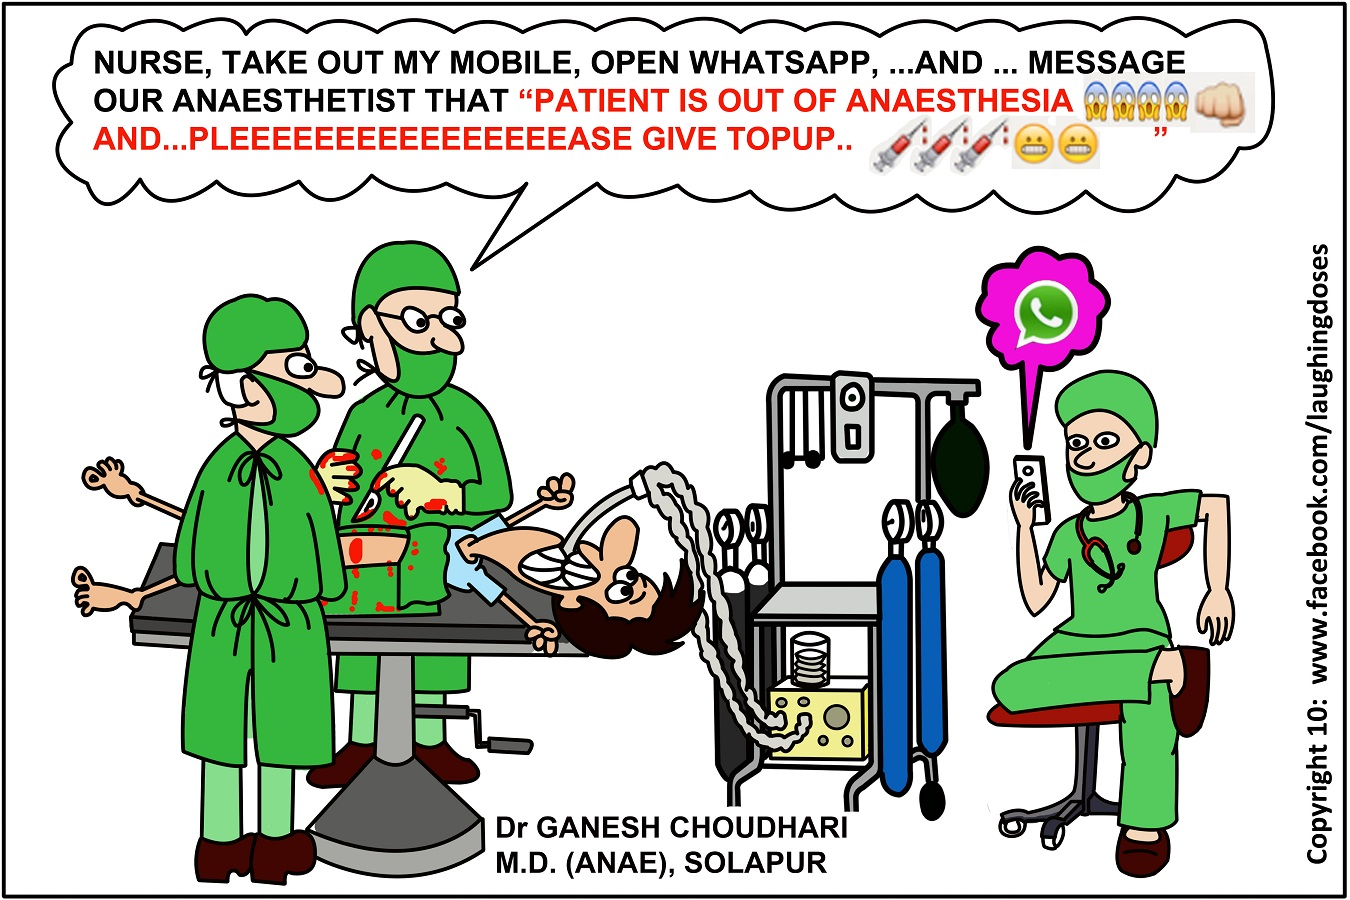 Surgical cartoons surgical cartoon funny surgical picture surgical - Insane Funny Indian Surgeon Doctor